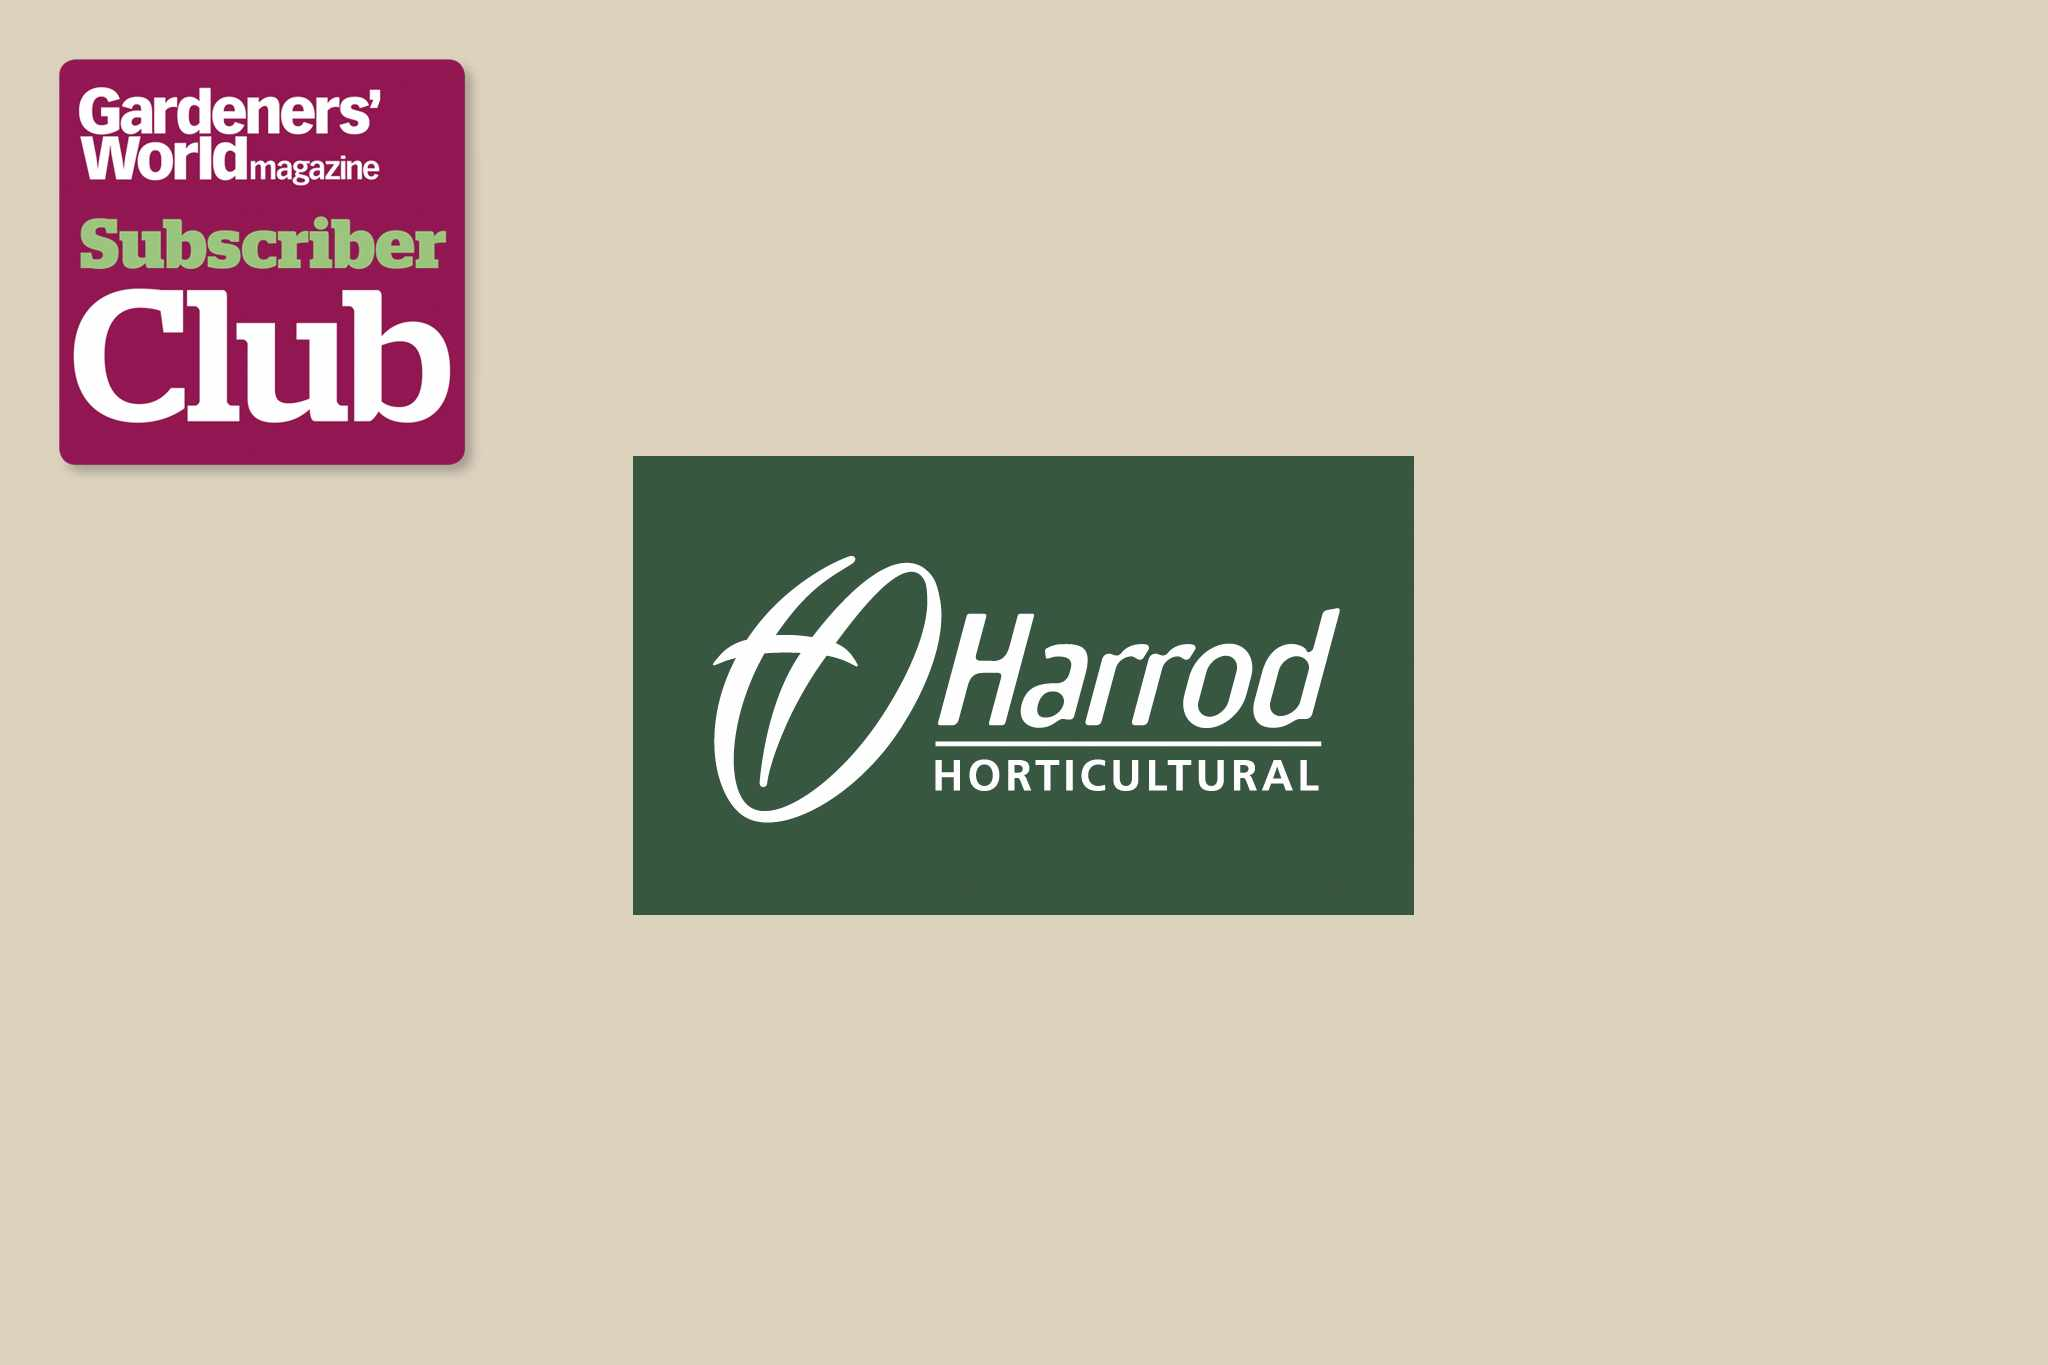 Harrod Horticultural BBC Gardeners' World Magazine Subscriber Club discount